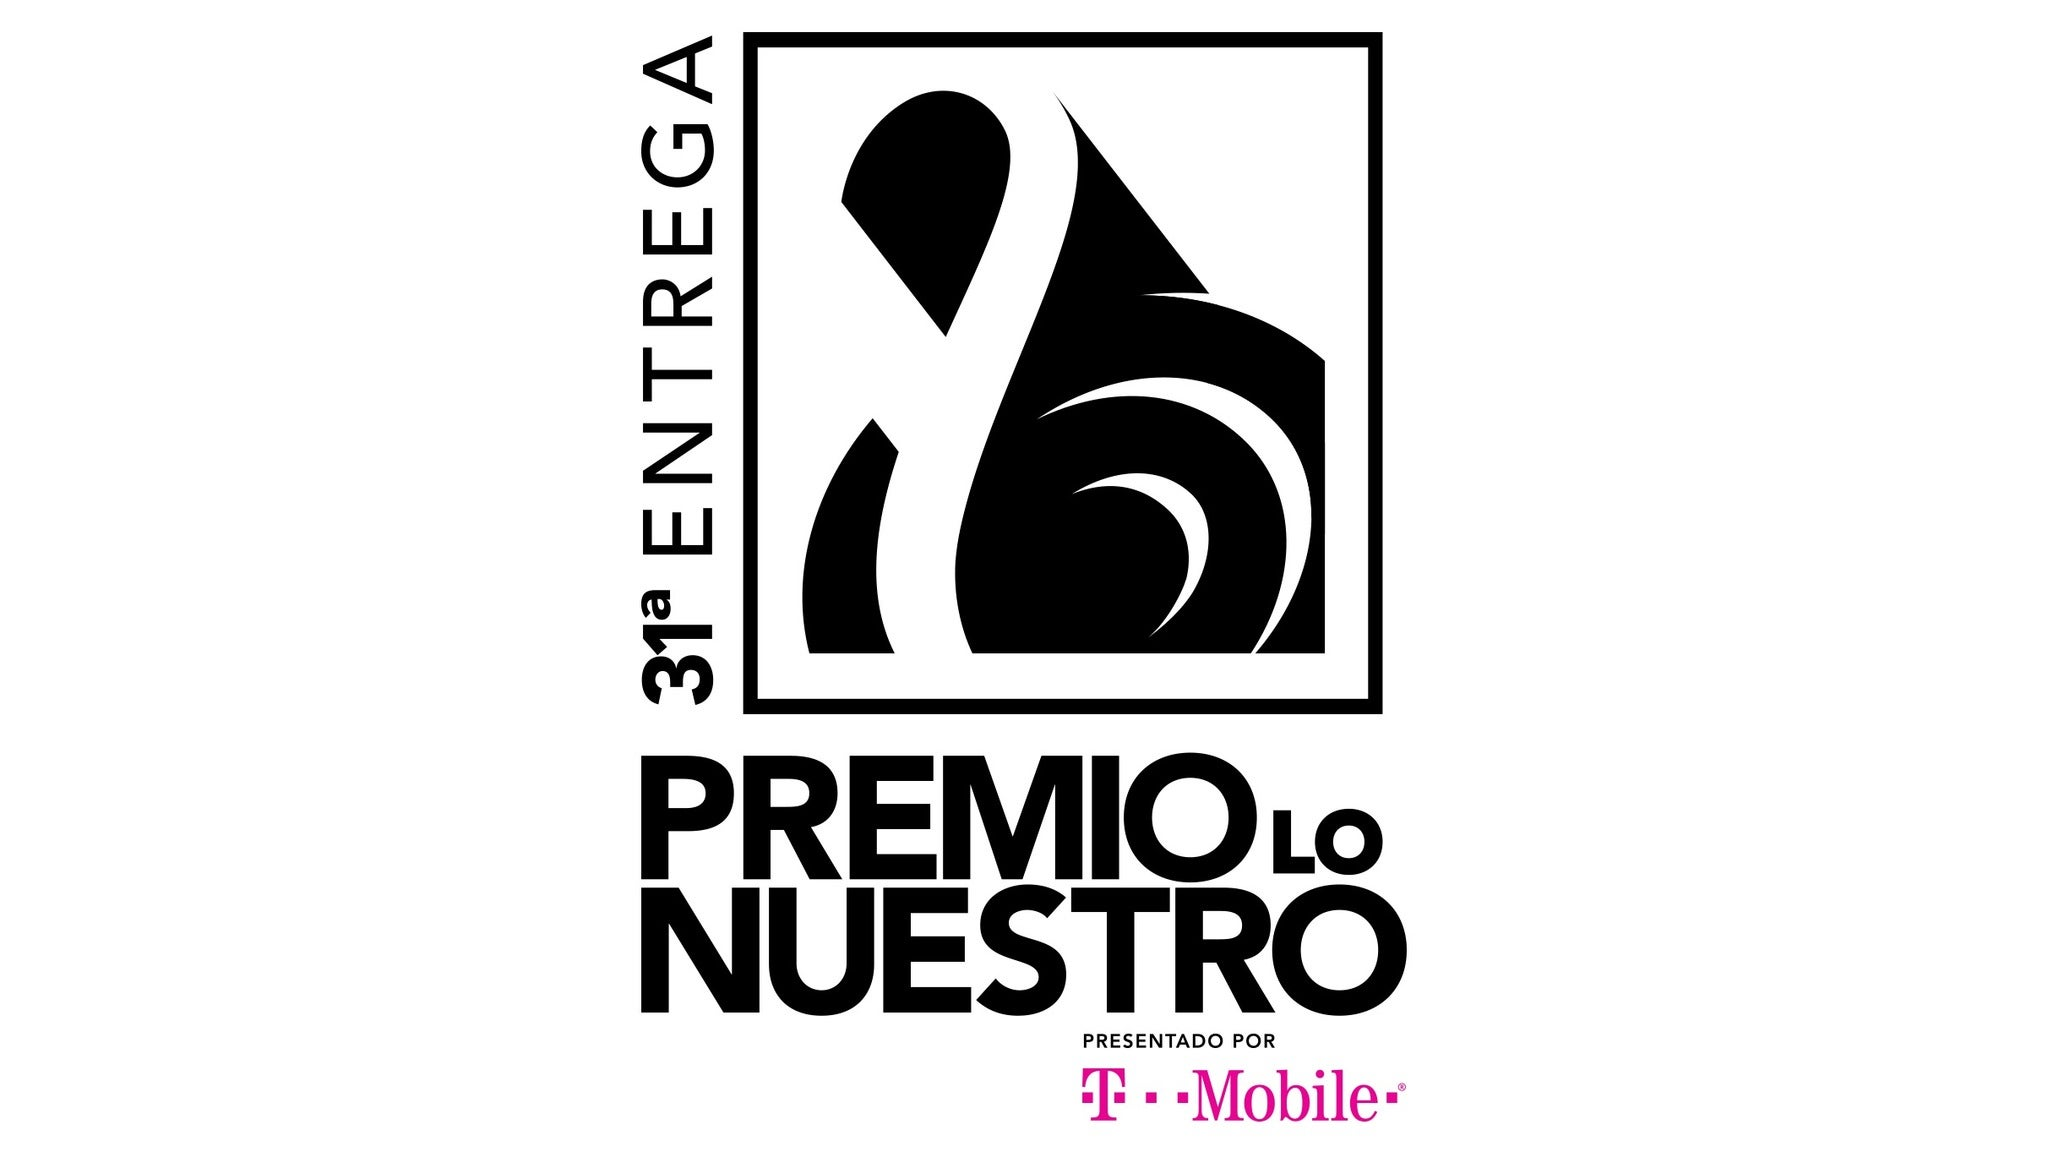 Premio Lo Nuestro presented by T-Mobile